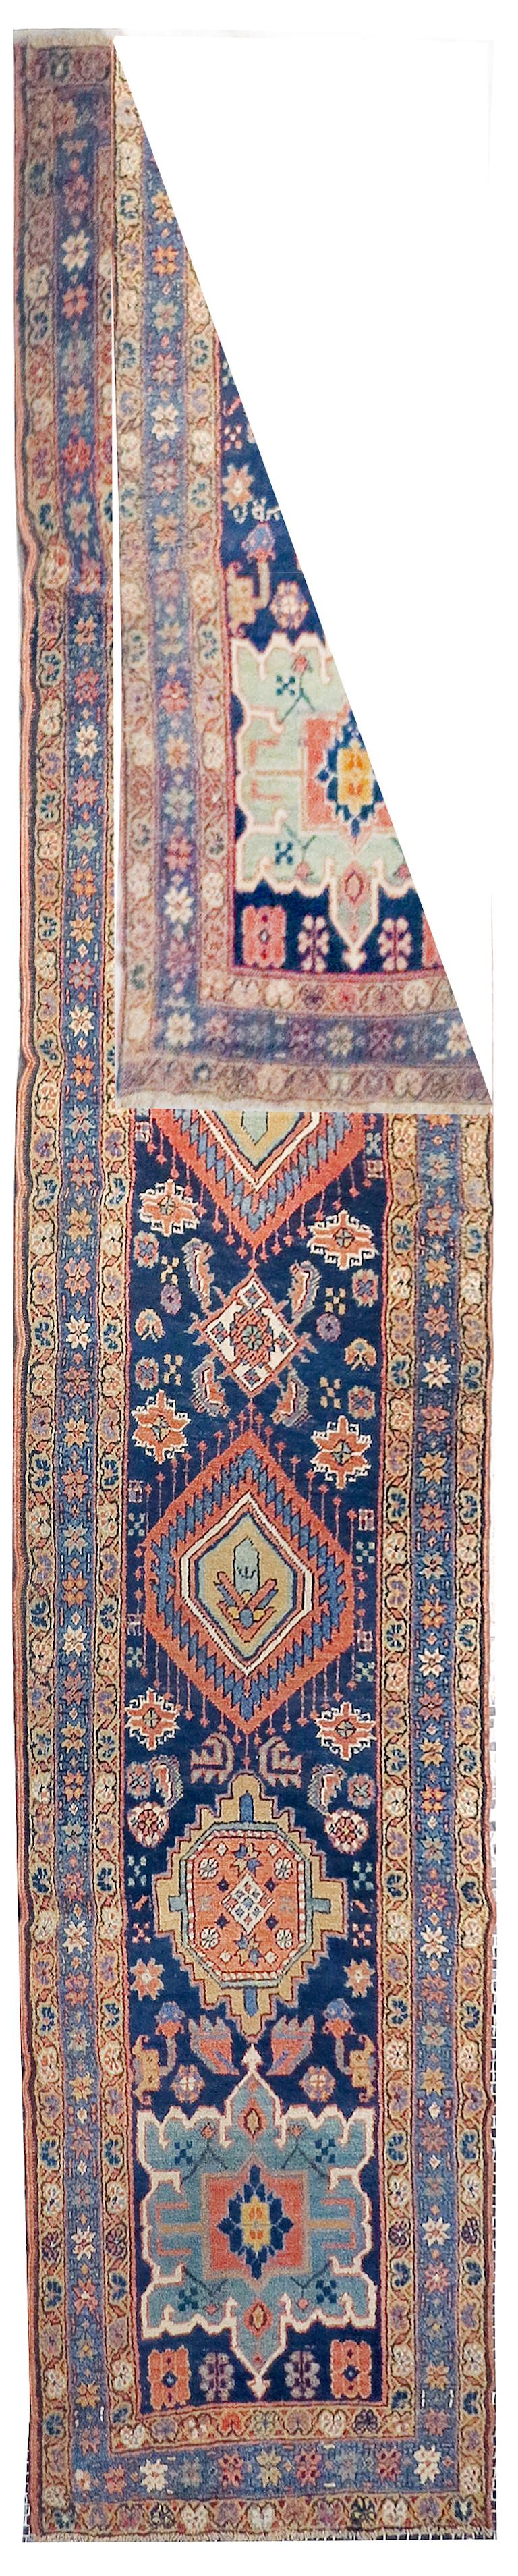 Heriz Serapi Fine Antique Persian Heriz/Serapi Runner Rug, Hand Knotted, circa 1890 For Sale